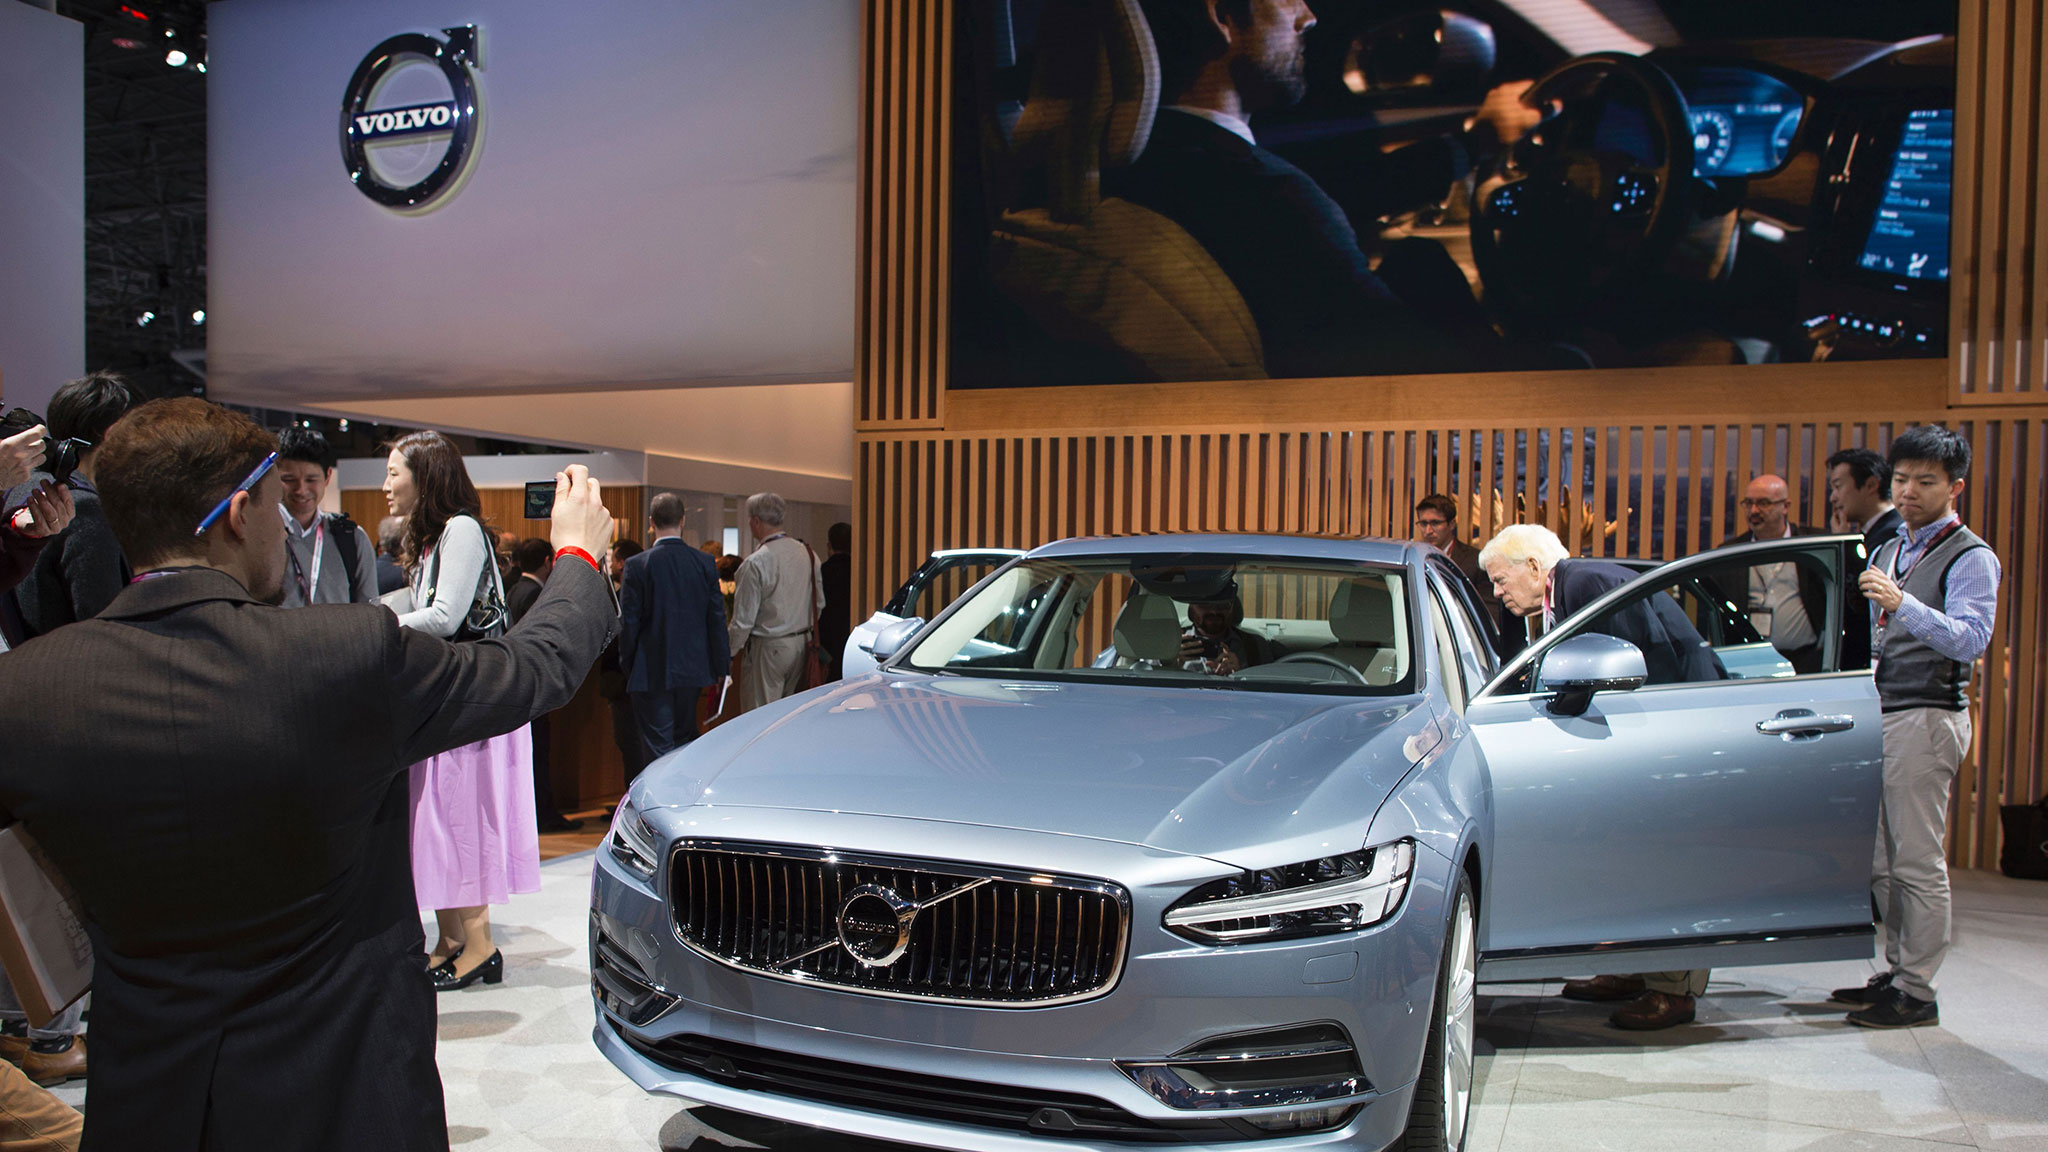 Drivers take a back seat for China luxury carmakers